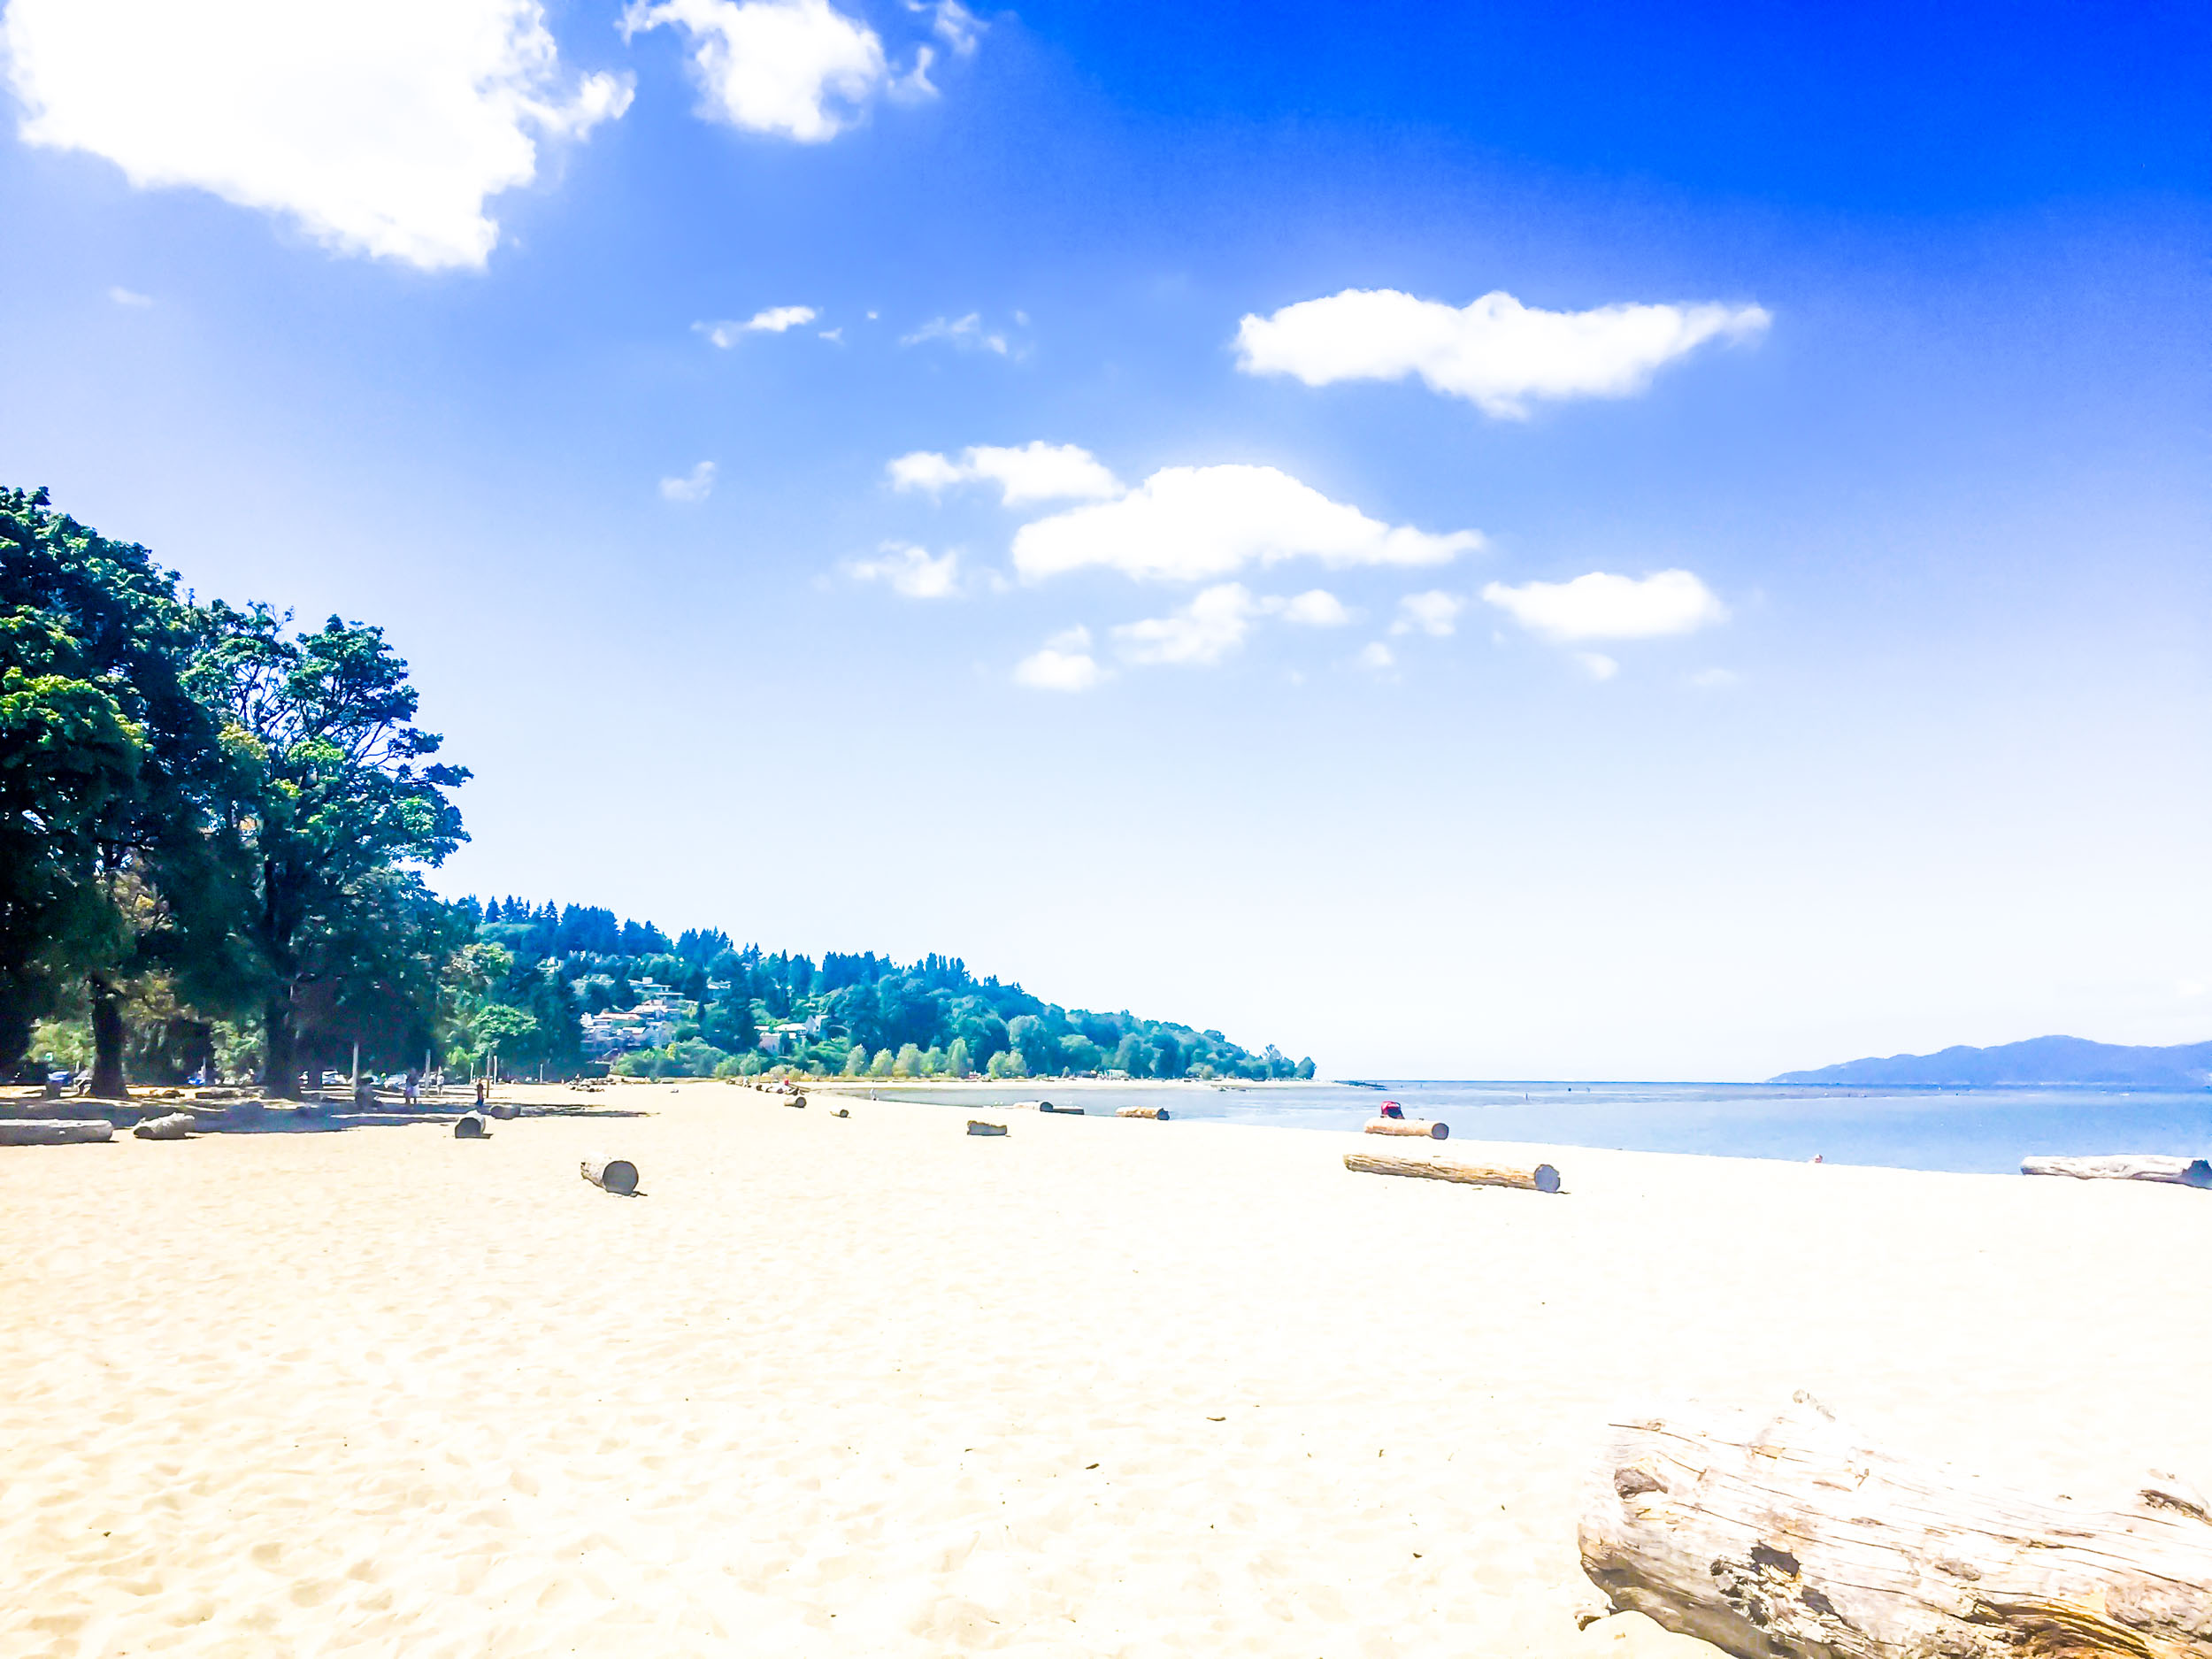 A summer's day on Jericho Beach, Vancouver.